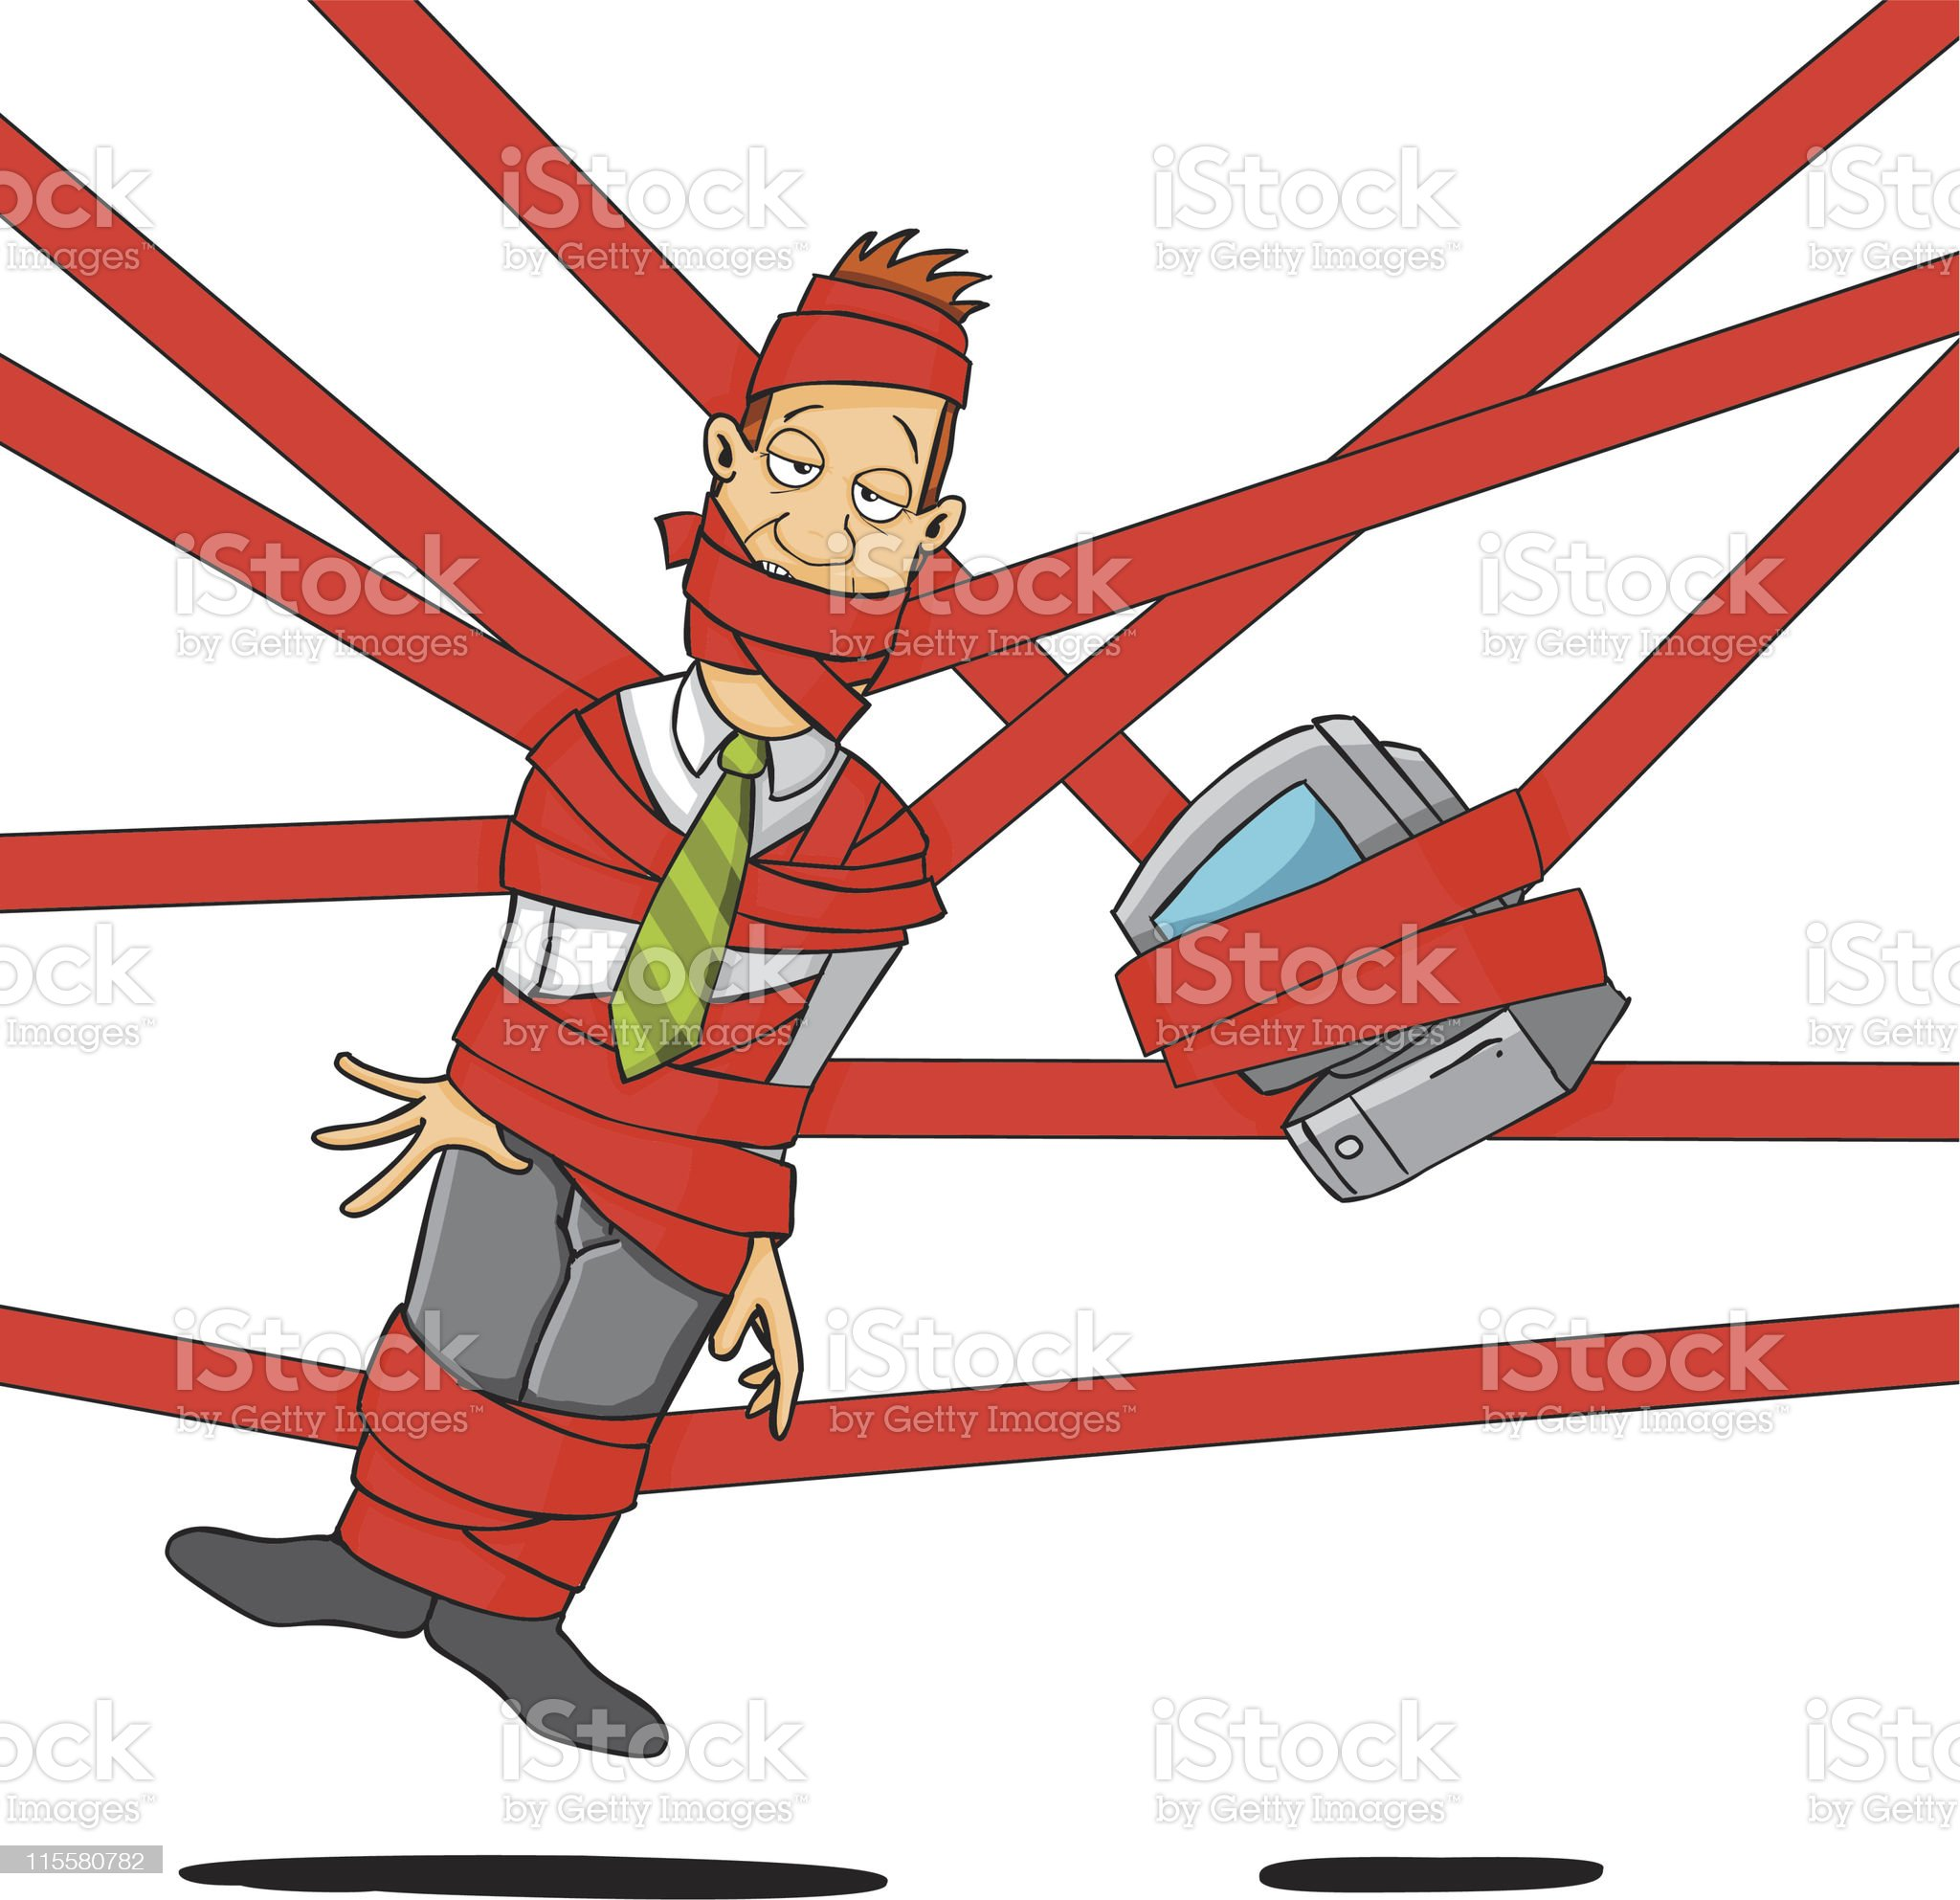 Caught in the red tape royalty-free stock vector art